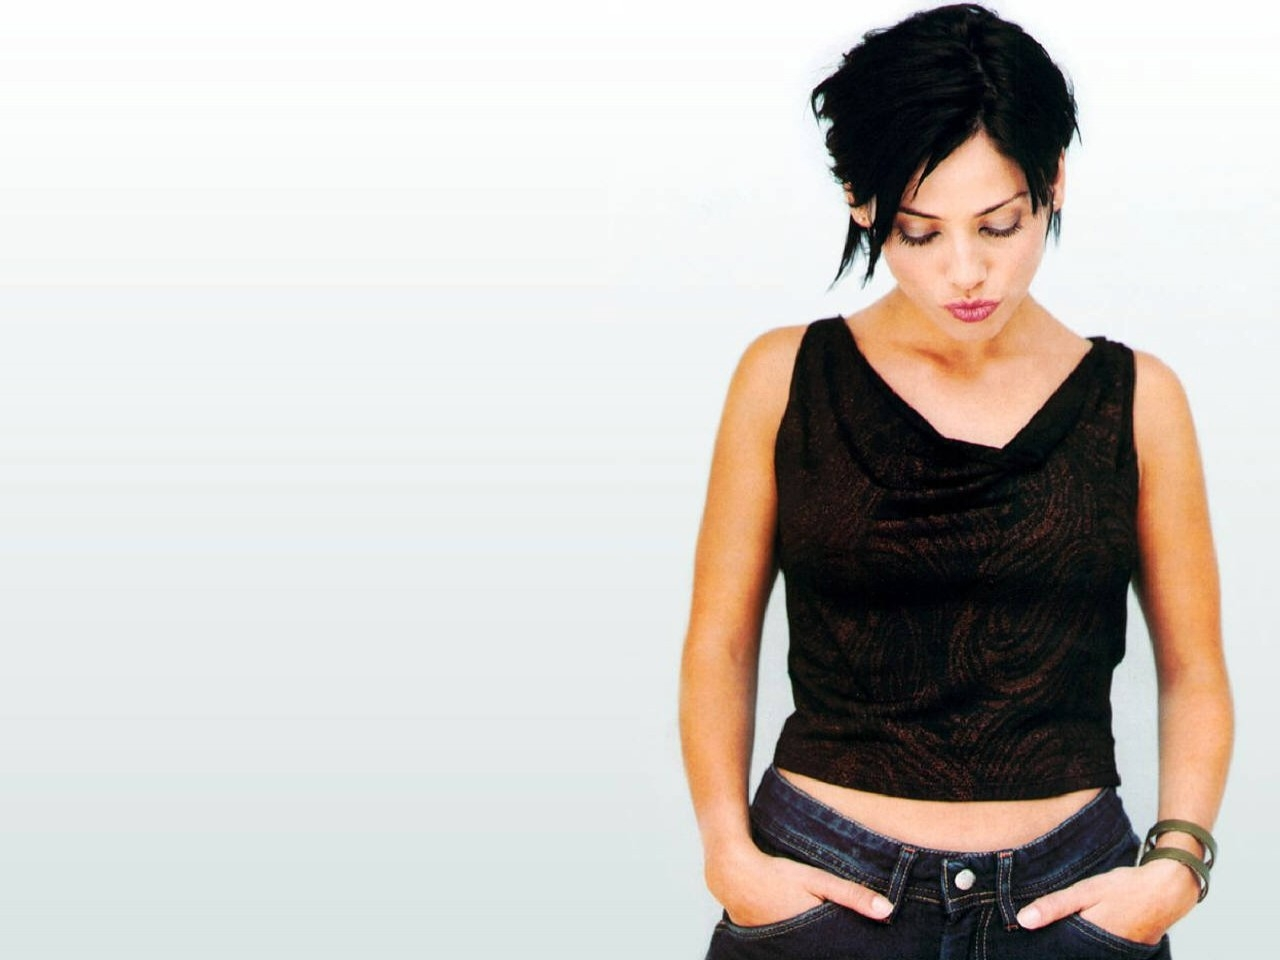 Wallpaper di Natalie Imbruglia in jeans